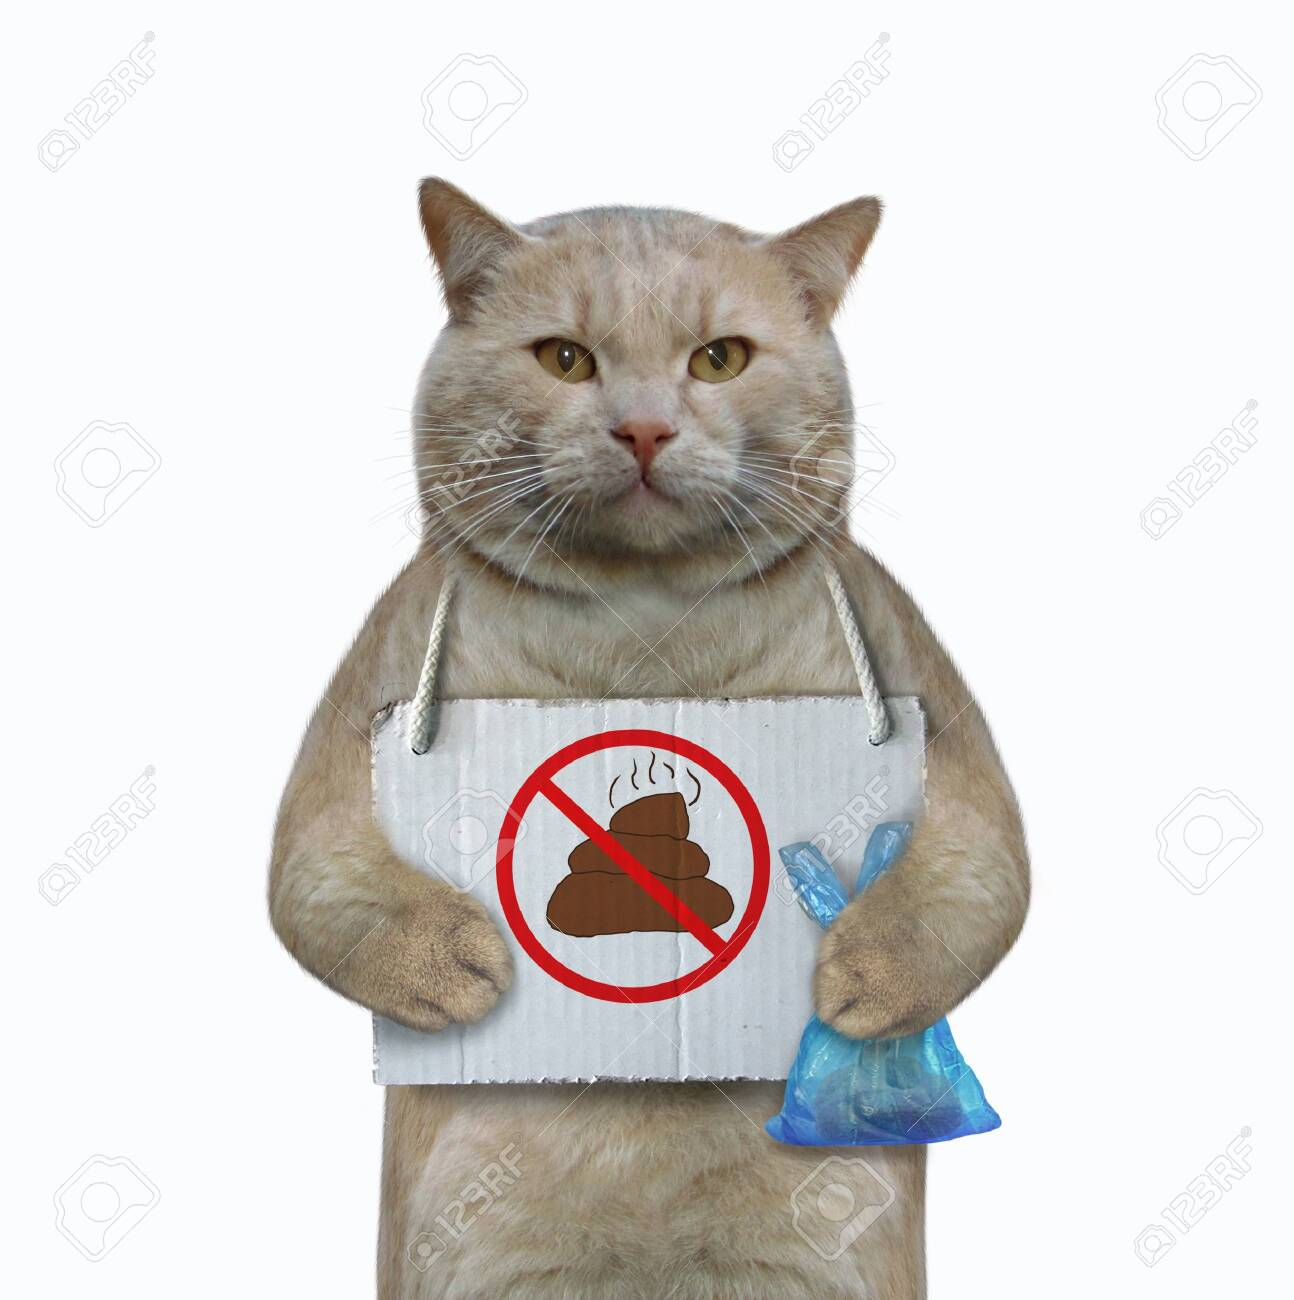 """The cat has a sign around his neck that says """" no pooping """". He holds a blue plastic bag with poop. White background. Isolated. - 144753999"""